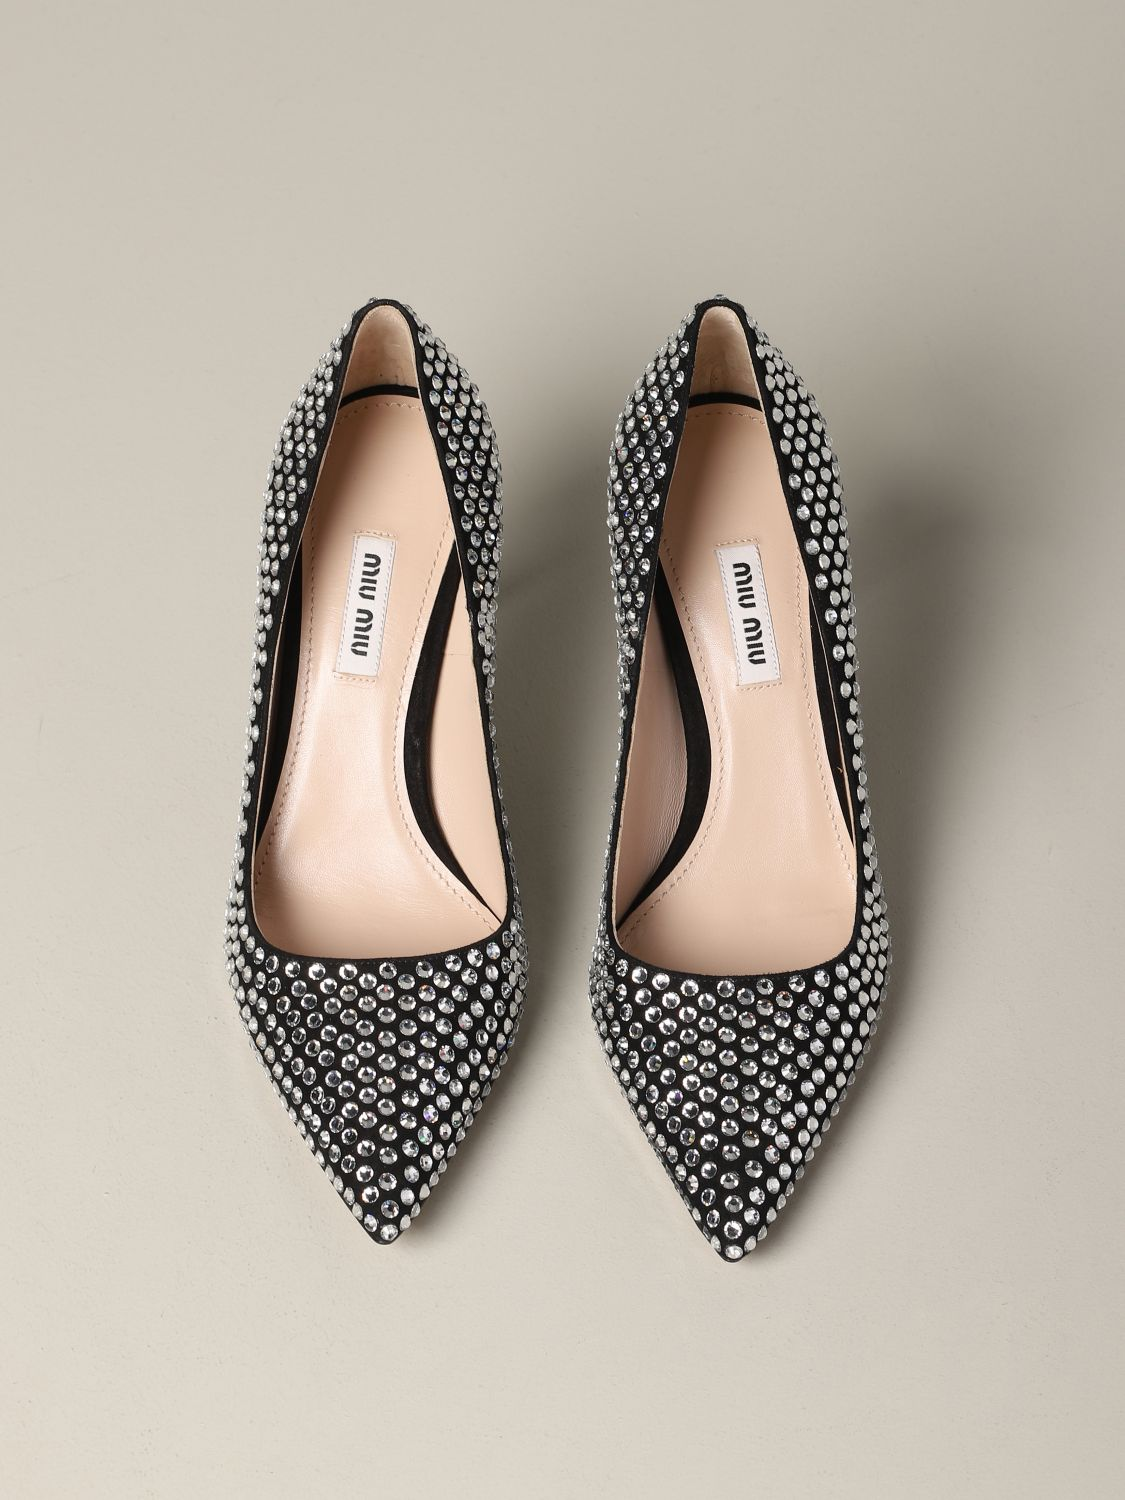 Miu Miu pumps with all-over rhinestones black 3